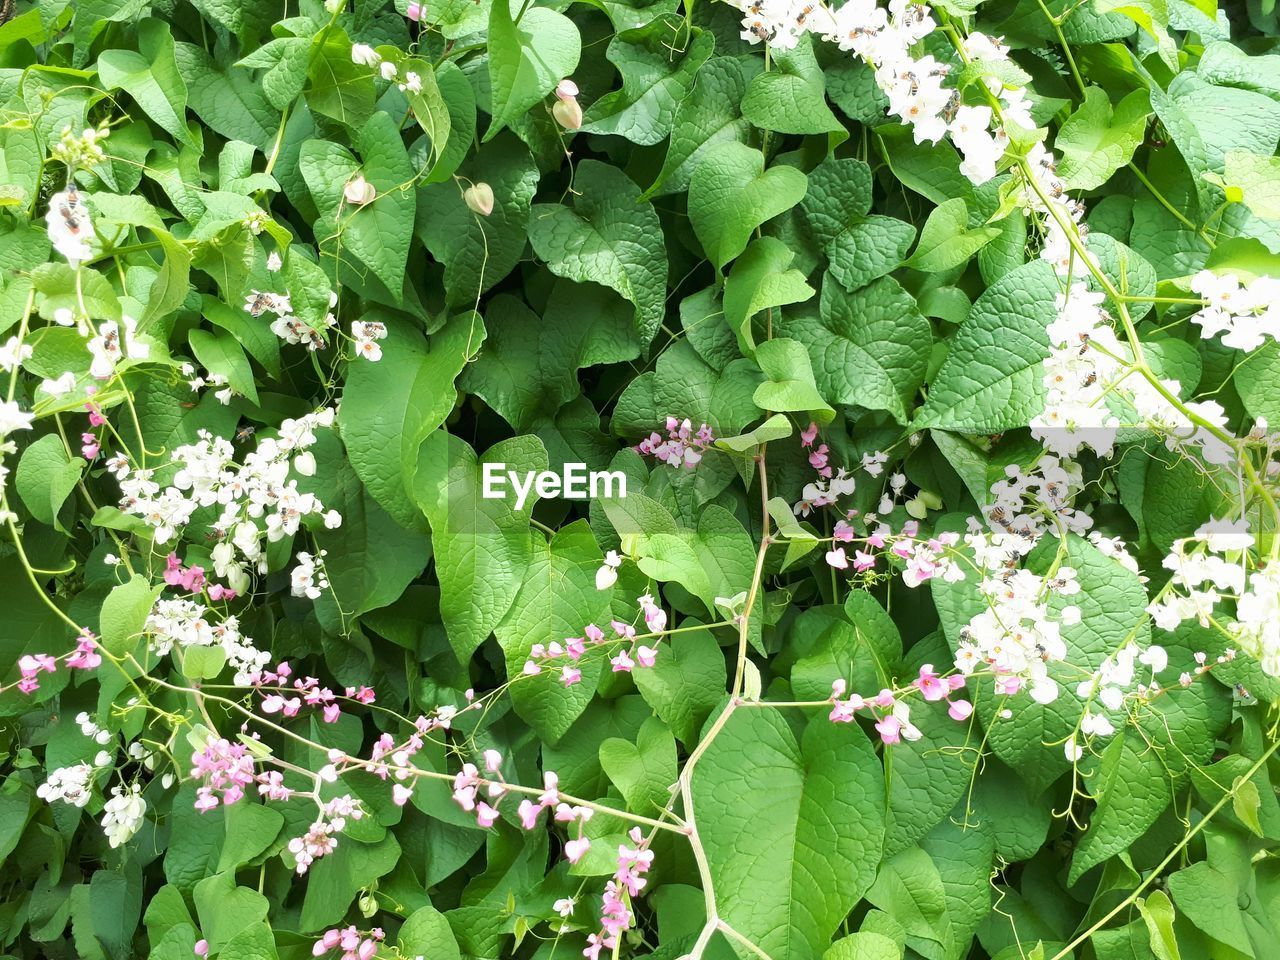 growth, plant, plant part, leaf, flowering plant, flower, green color, freshness, beauty in nature, nature, day, fragility, vulnerability, high angle view, no people, outdoors, petal, close-up, pink color, flower head, springtime